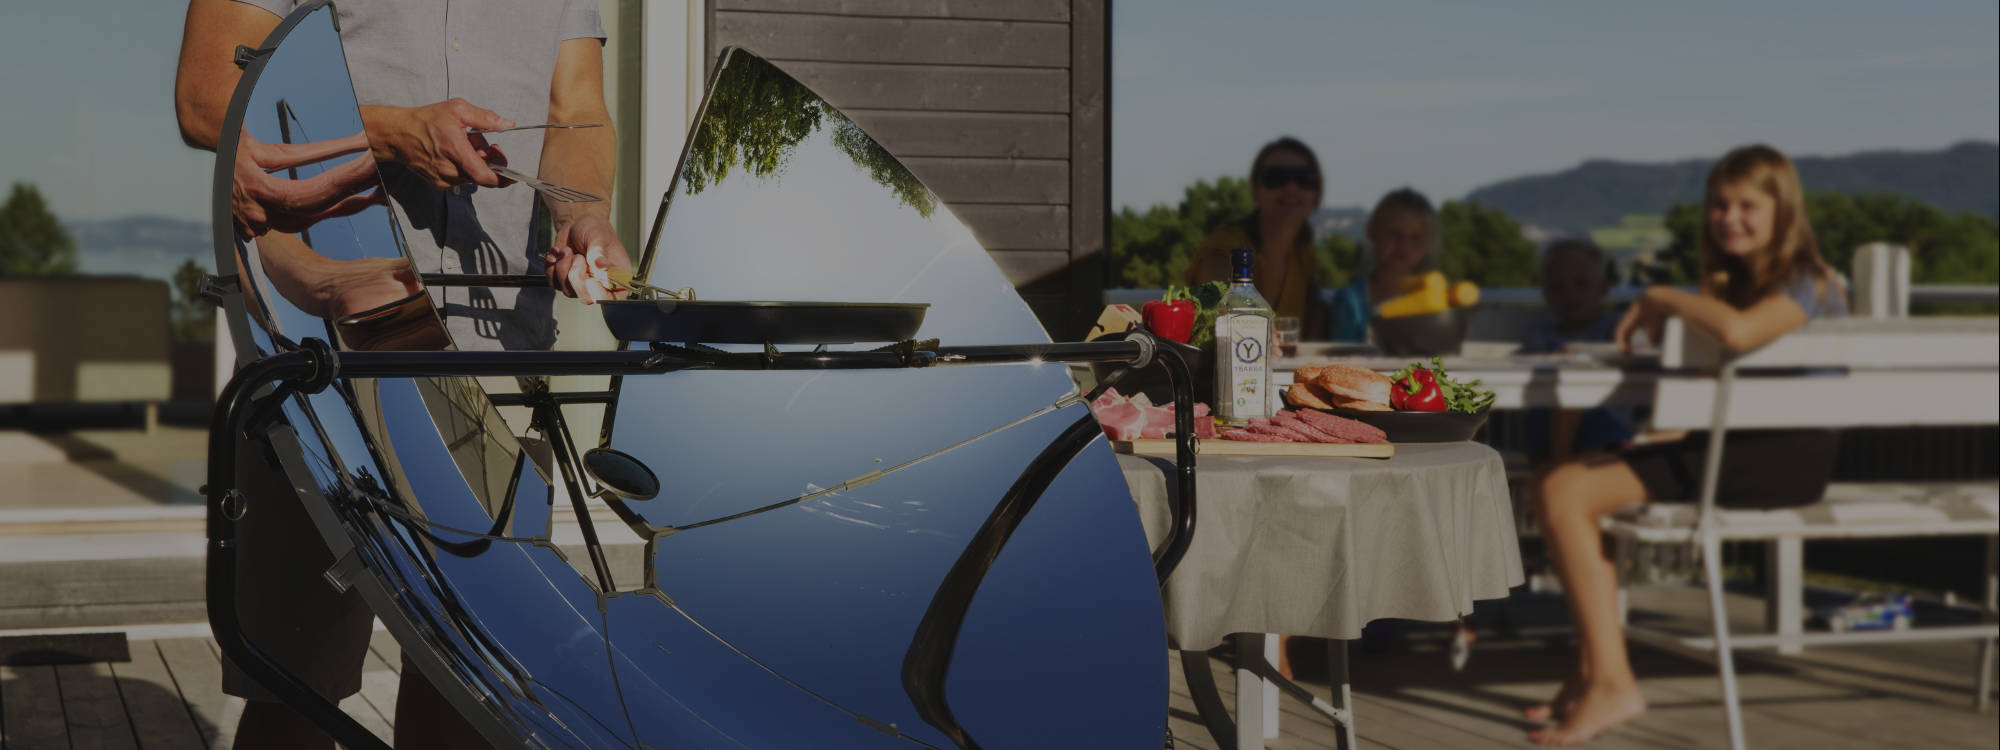 Catlin Powers: Solar Cooking to Combat Deforestation and Indoor Air Pollution